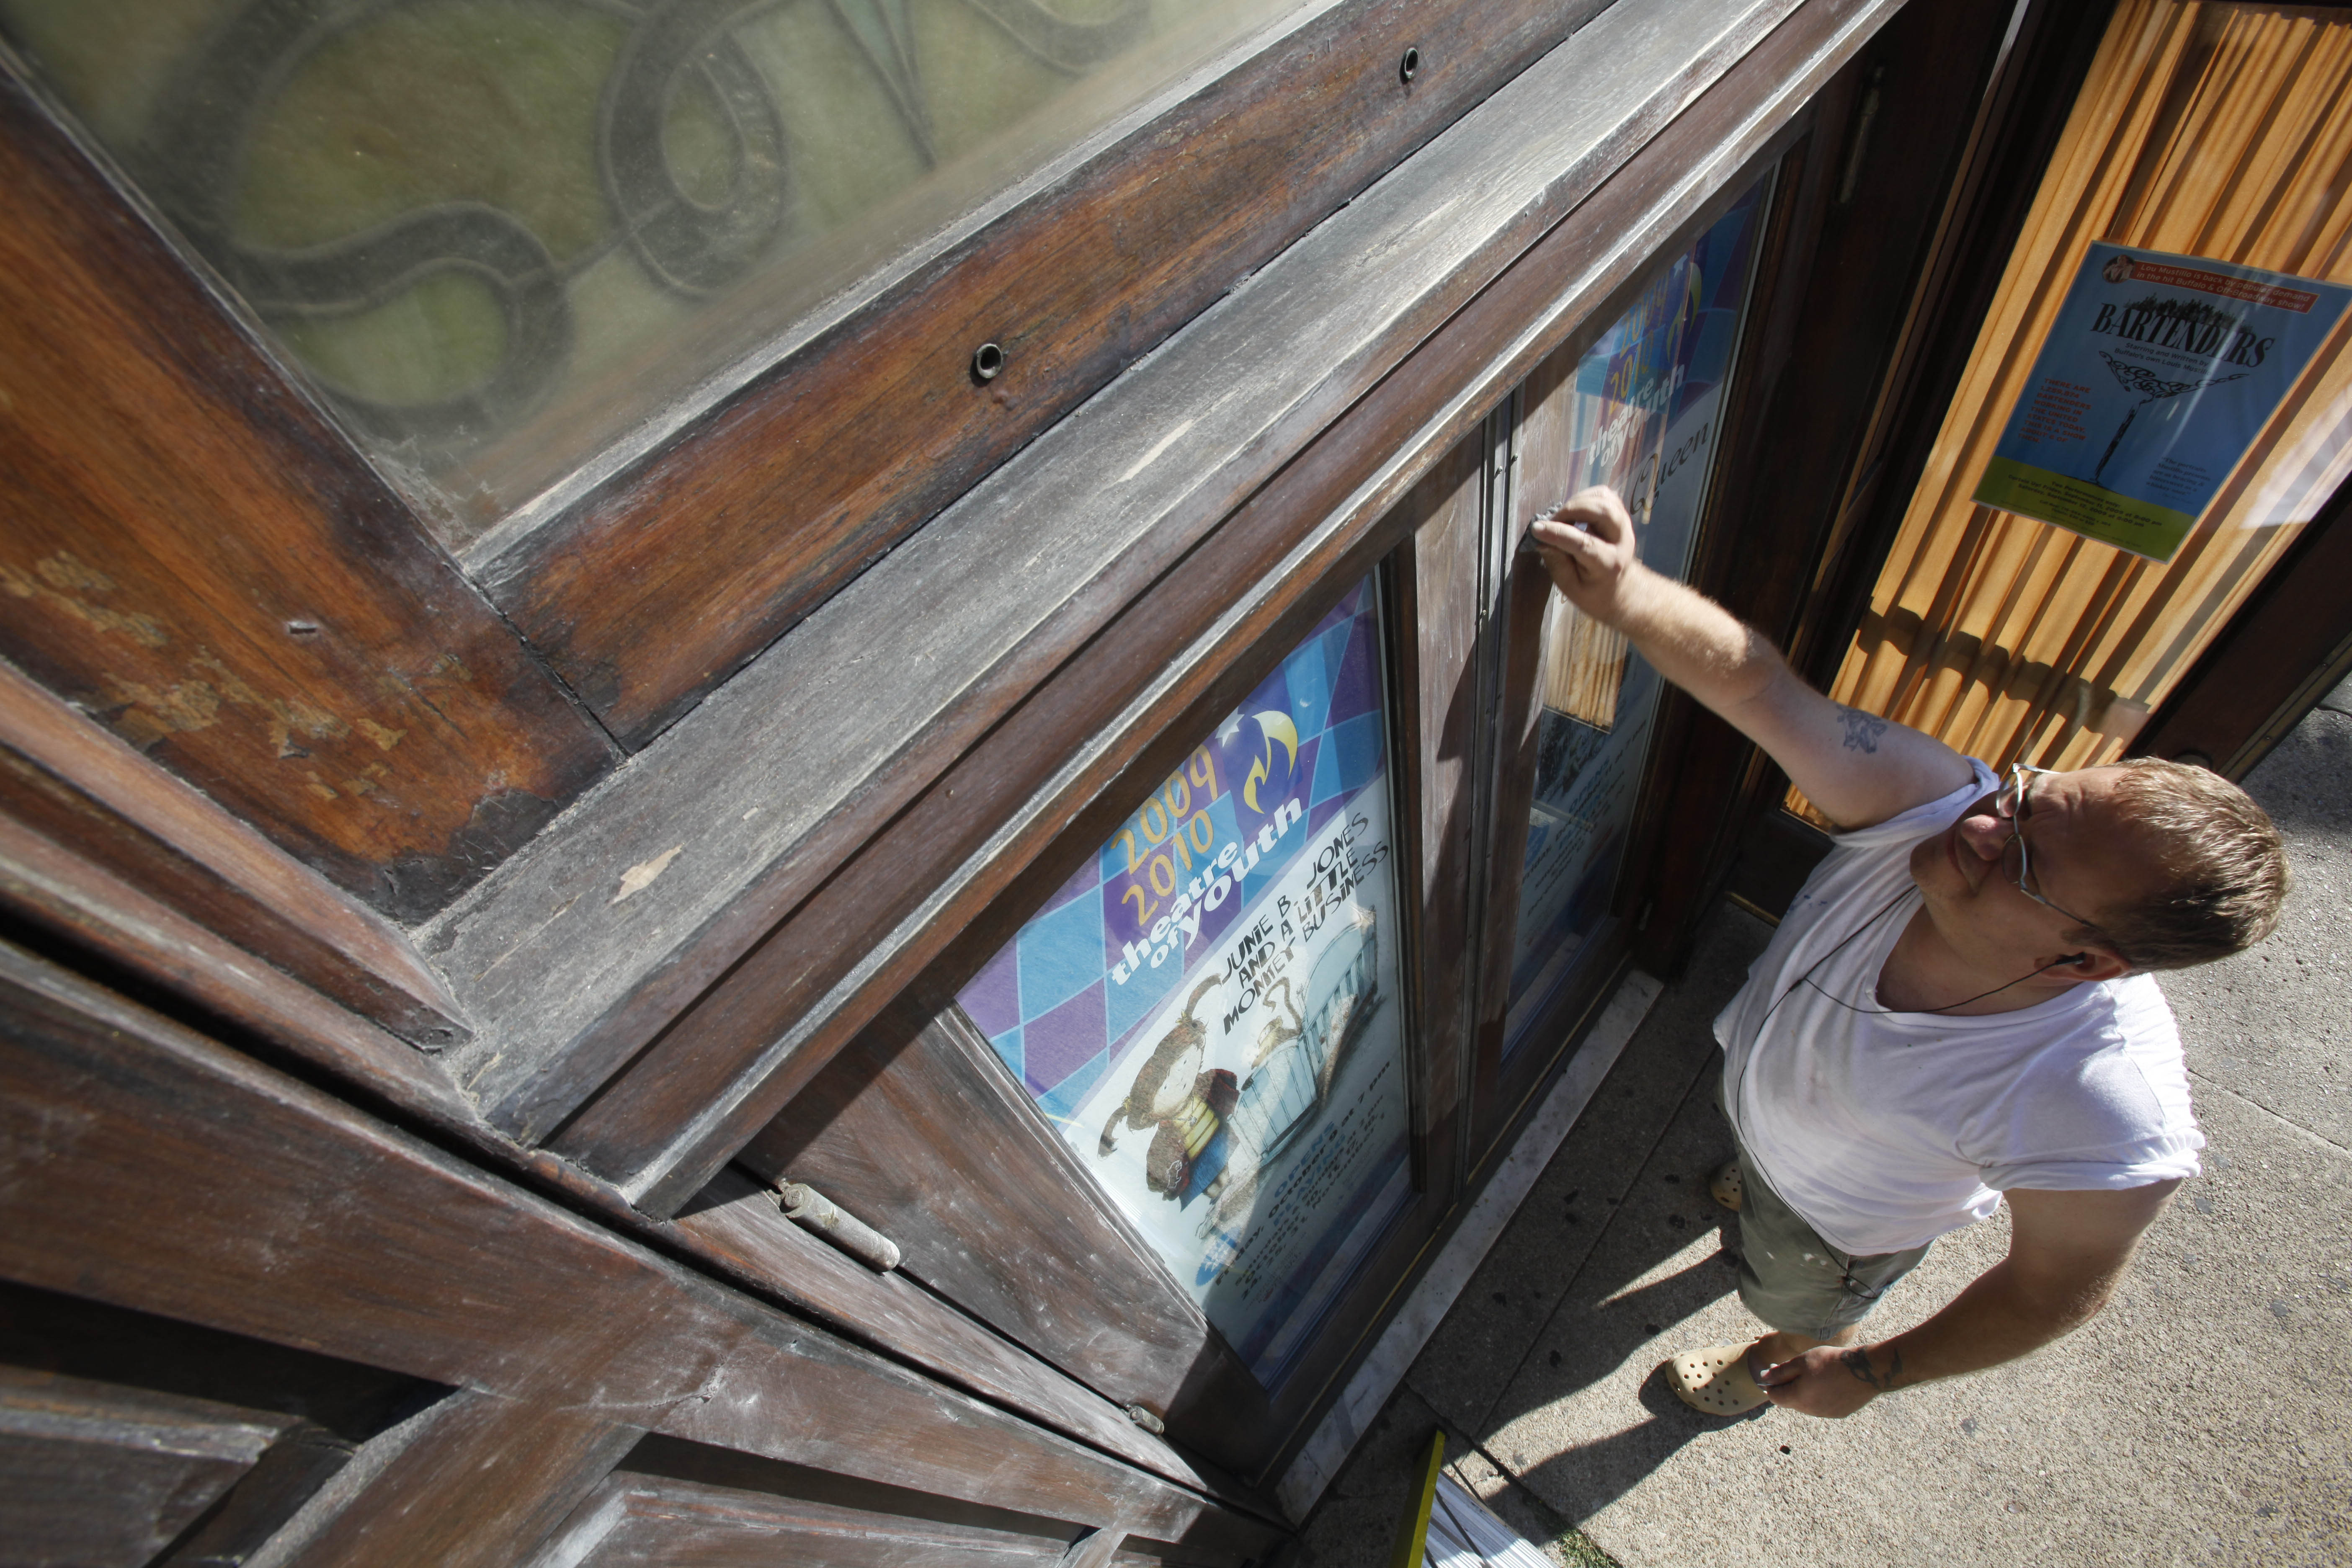 Ken Shaw, head of design at the Theatre of Youth on Allen Street, refinishes the woodwork on the theater's front door Sept. 3, 2009, as he prepares for the upcoming Curtain Up! event. (Photo by Derek Gee/Buffalo News)